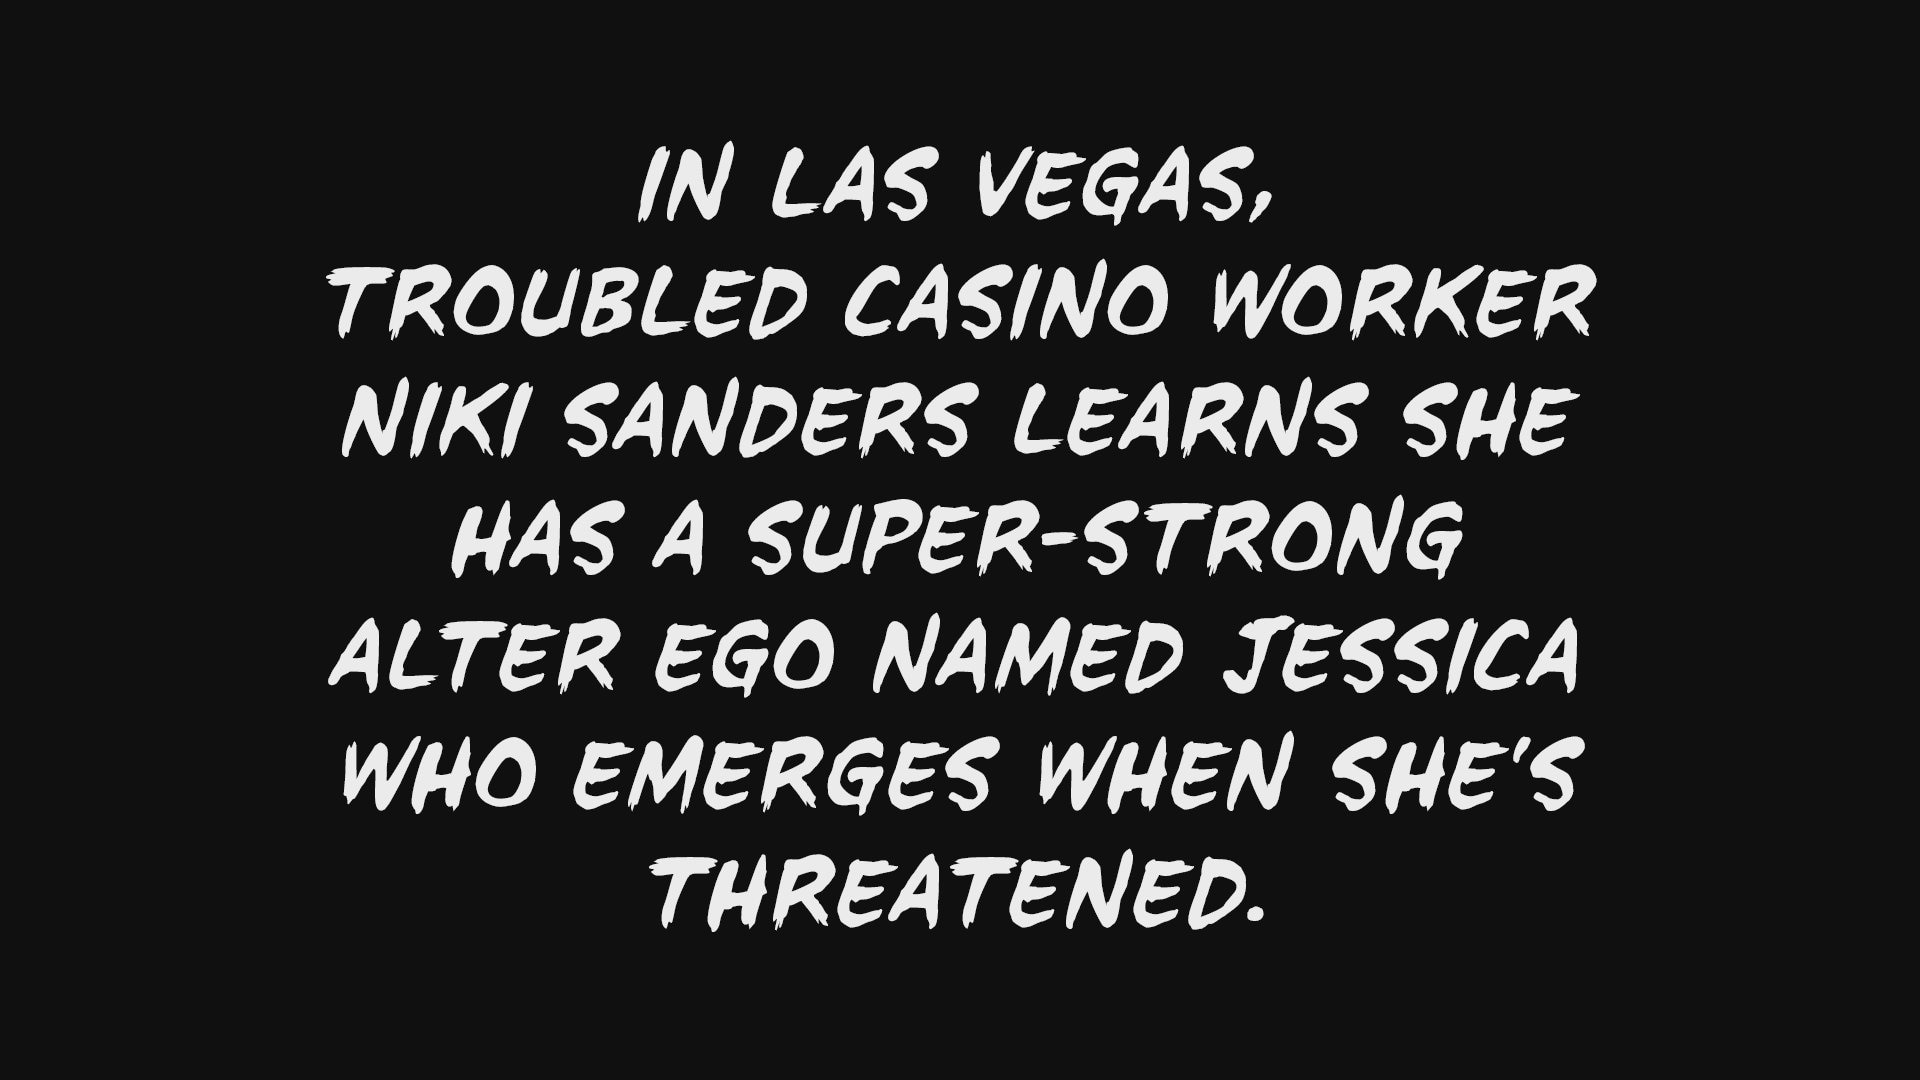 Watch Heroes Web Exclusive: In Las Vegas, troubled casino worker Niki Sanders learns she has a super-strong alter ego named Jessica who emerges when she's t ...